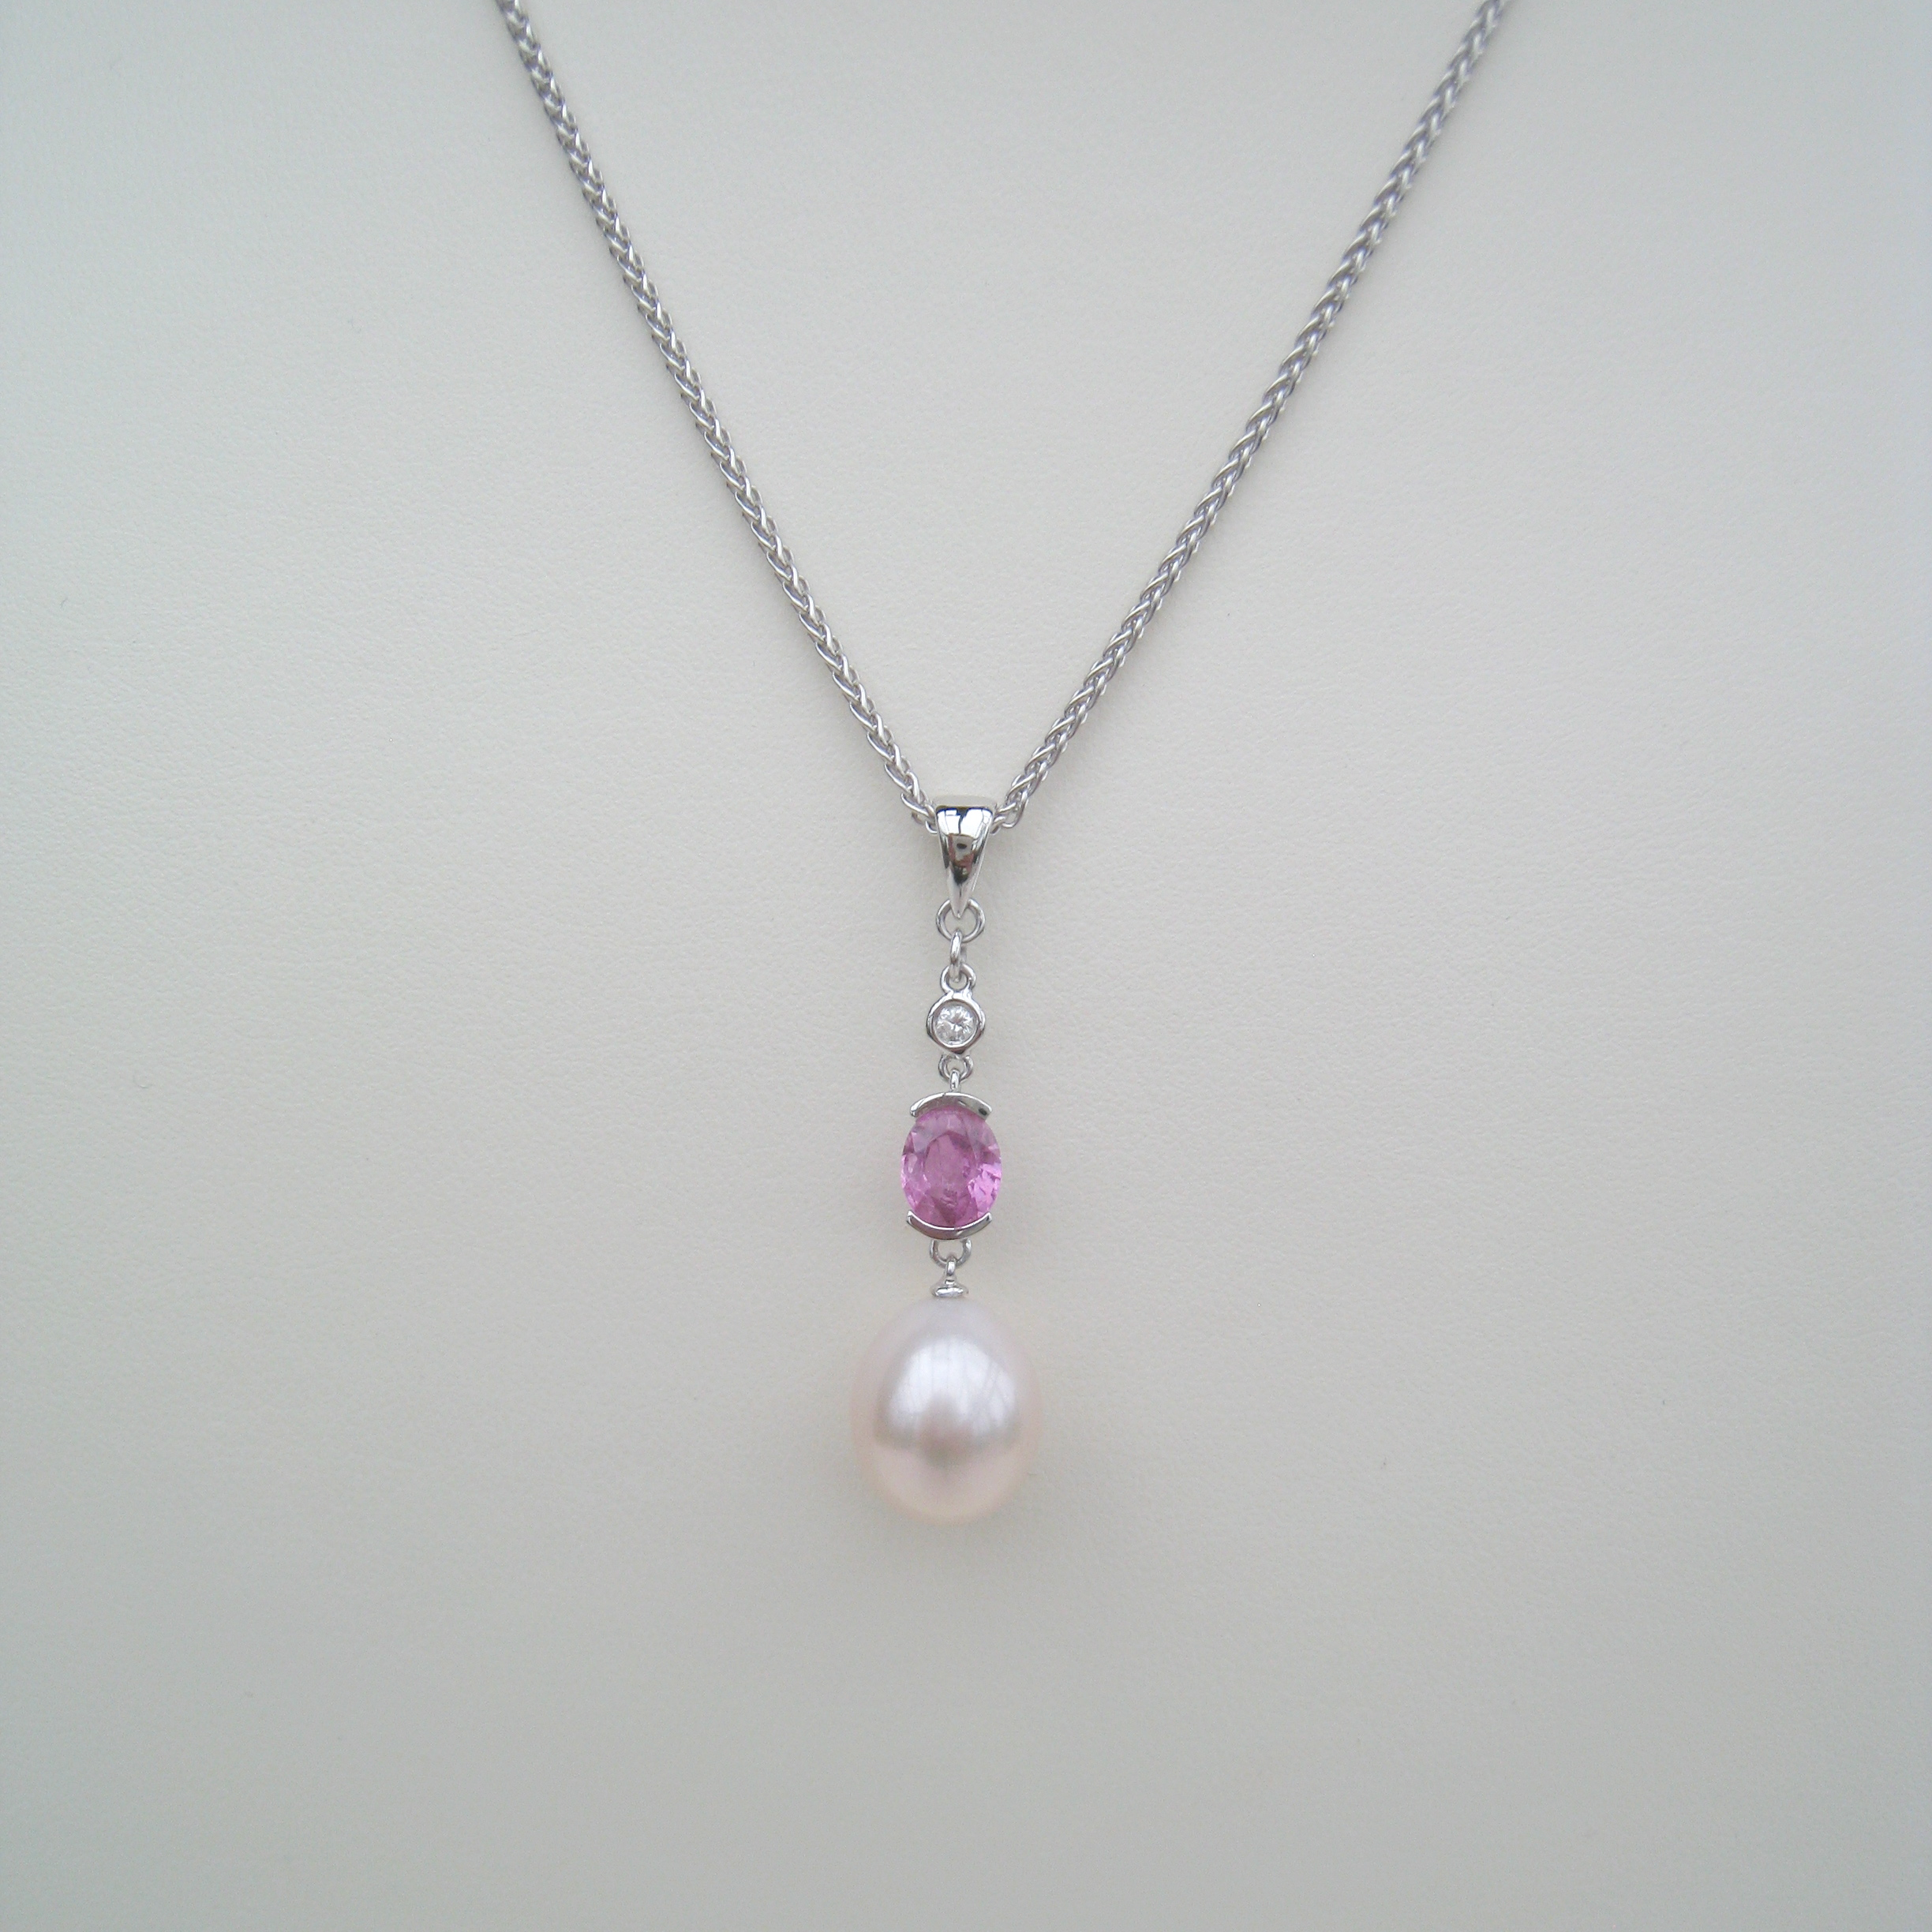 pendant boutique necklace pink pear sapphire diamond